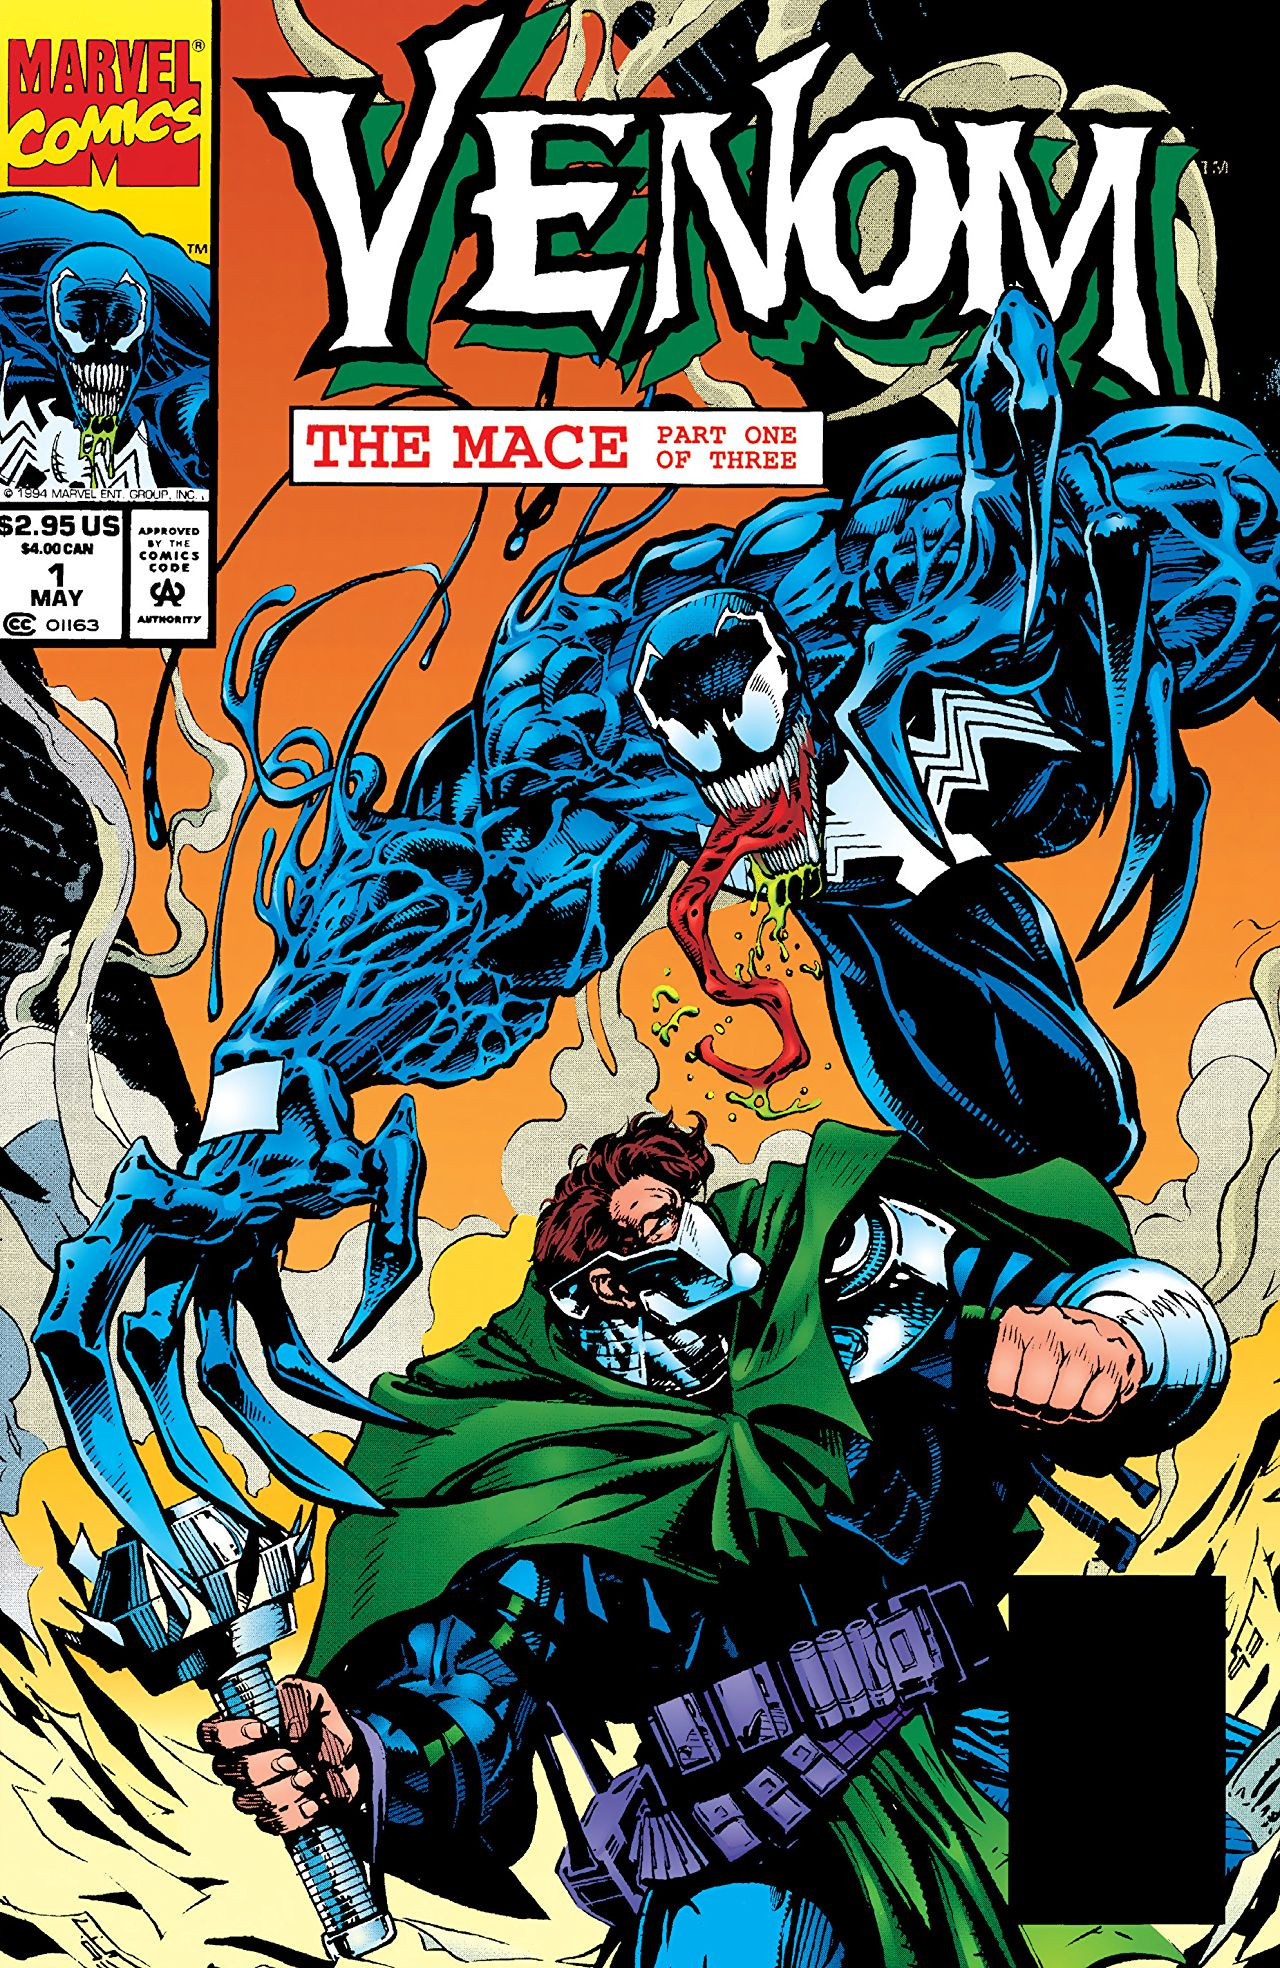 Venom: The Mace Vol 1 1